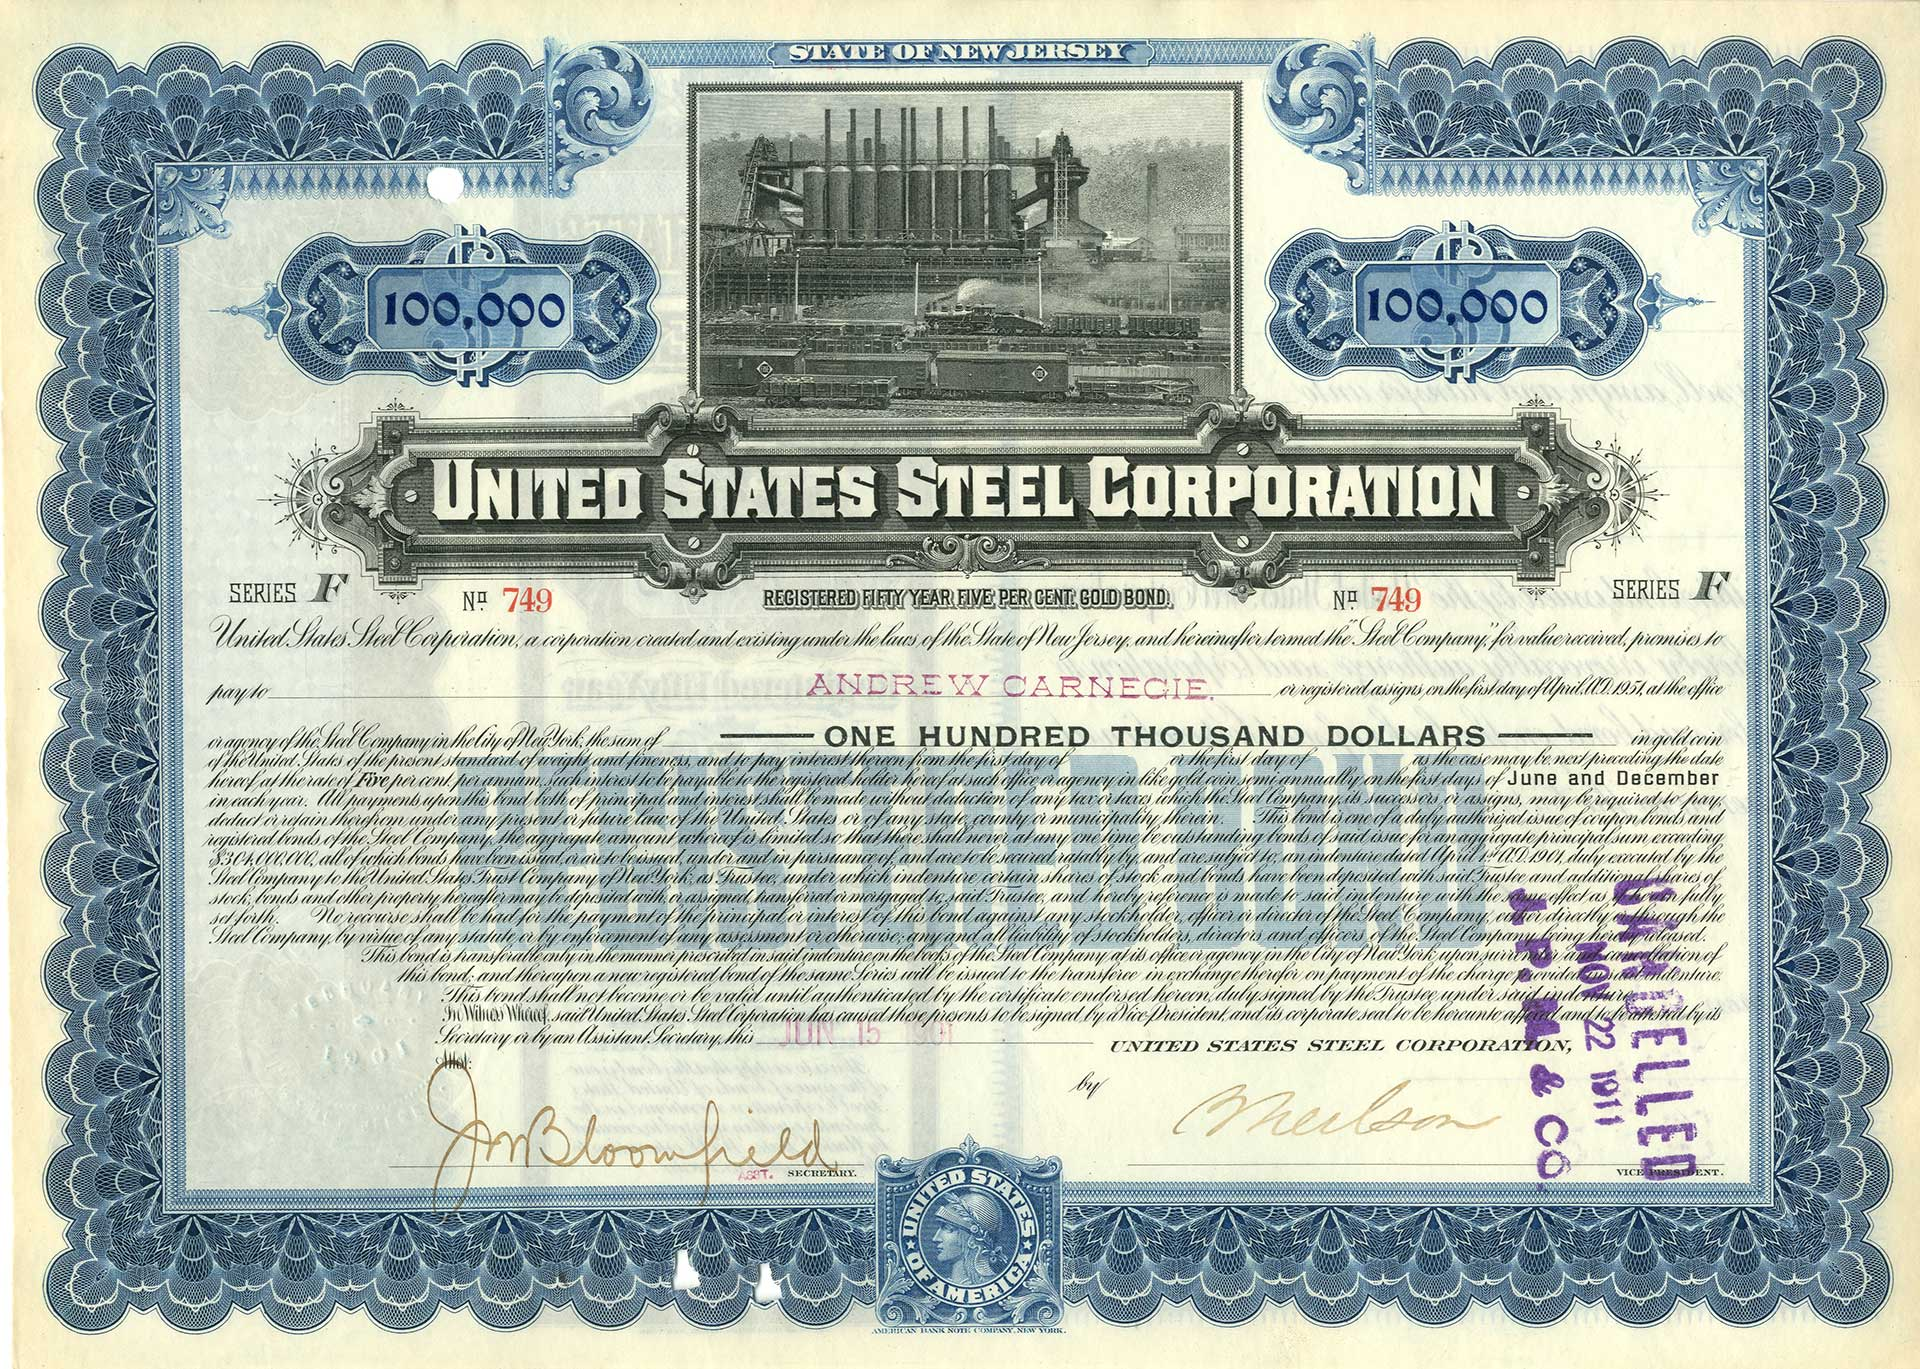 United States Steel Corp $100,000 Gold Bond Issued to Andrew Carnegie